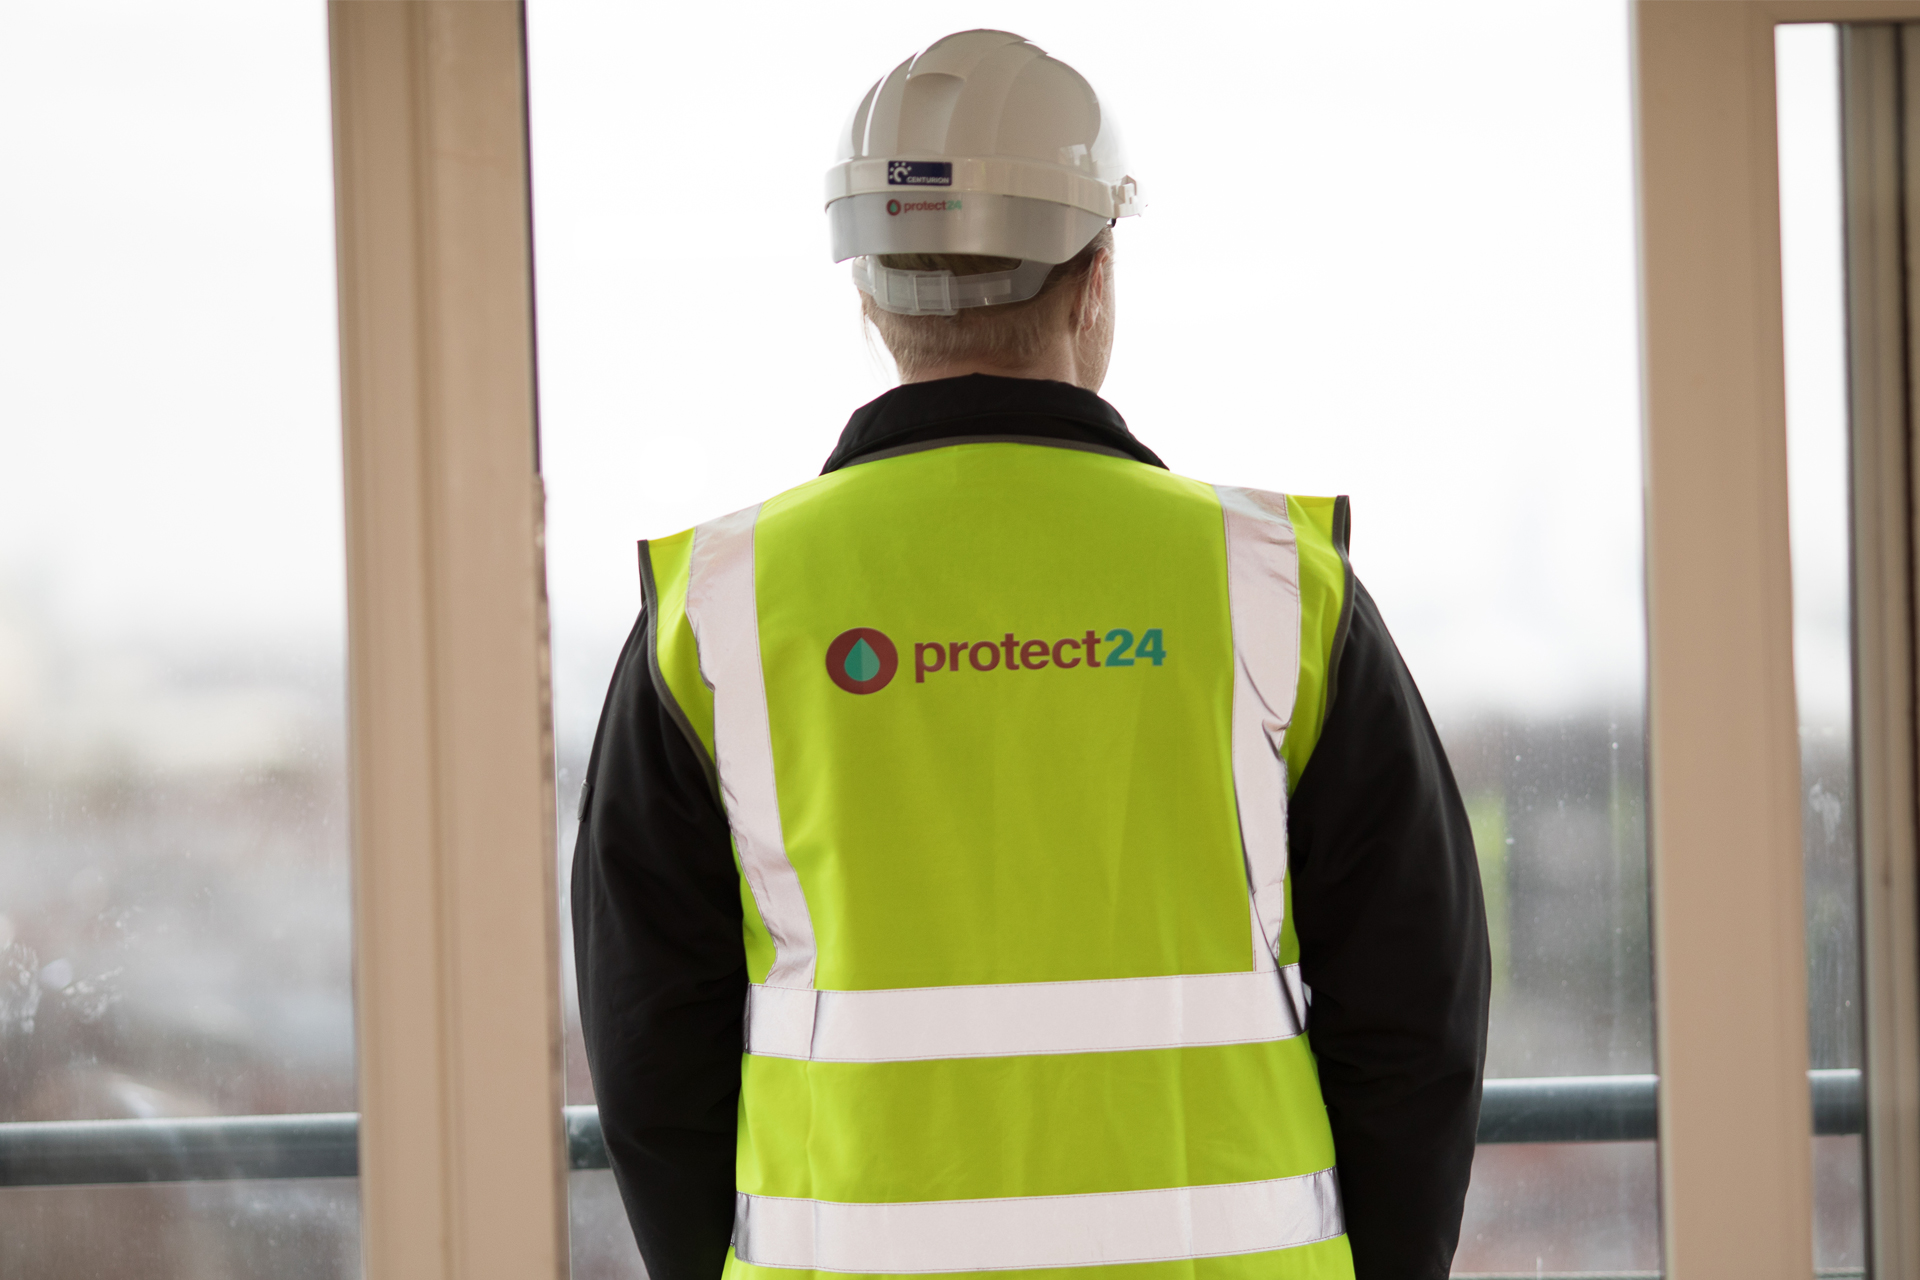 Protect24 Complete £5 million Sprinkler Retrofit Install